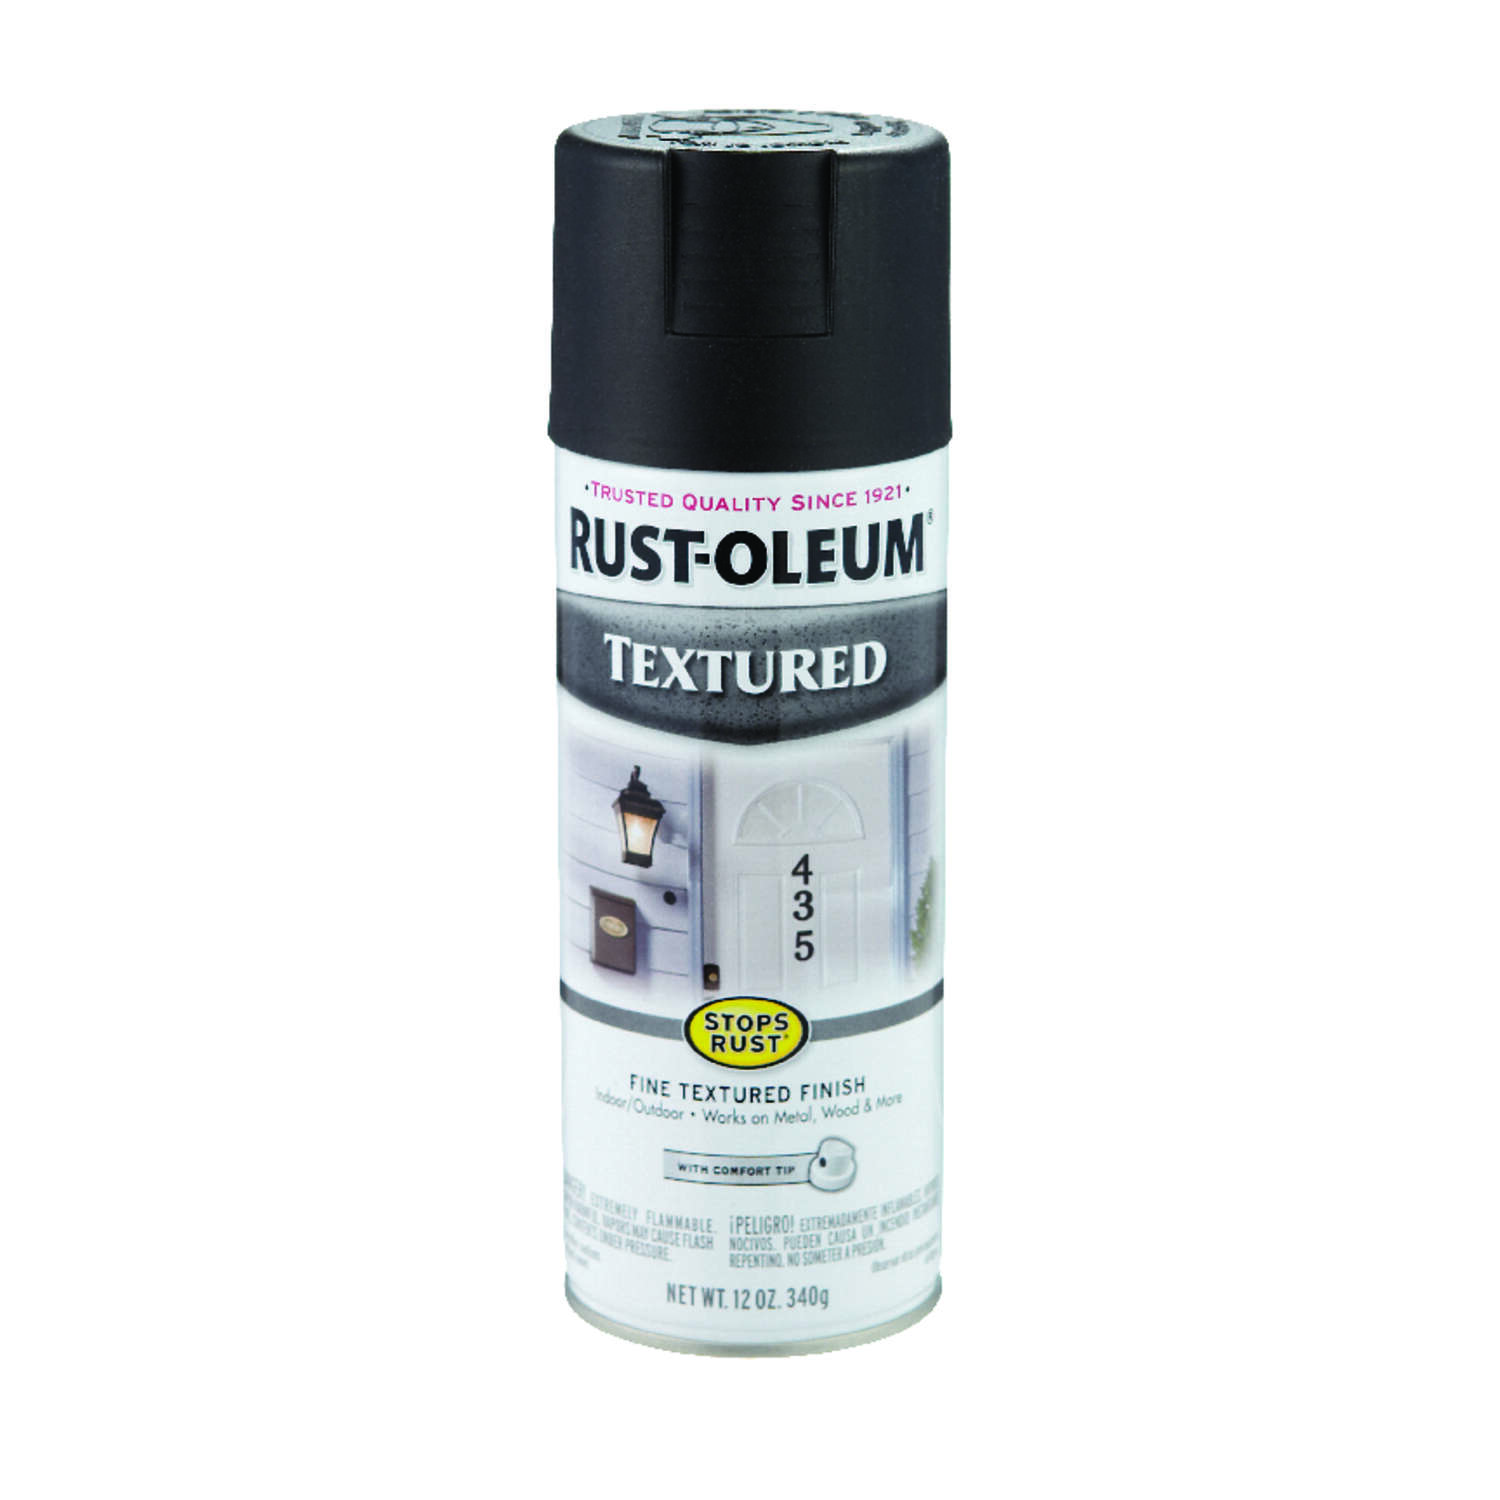 Rust-Oleum  Stops Rust  Textured  Black  Spray Paint  12 oz.